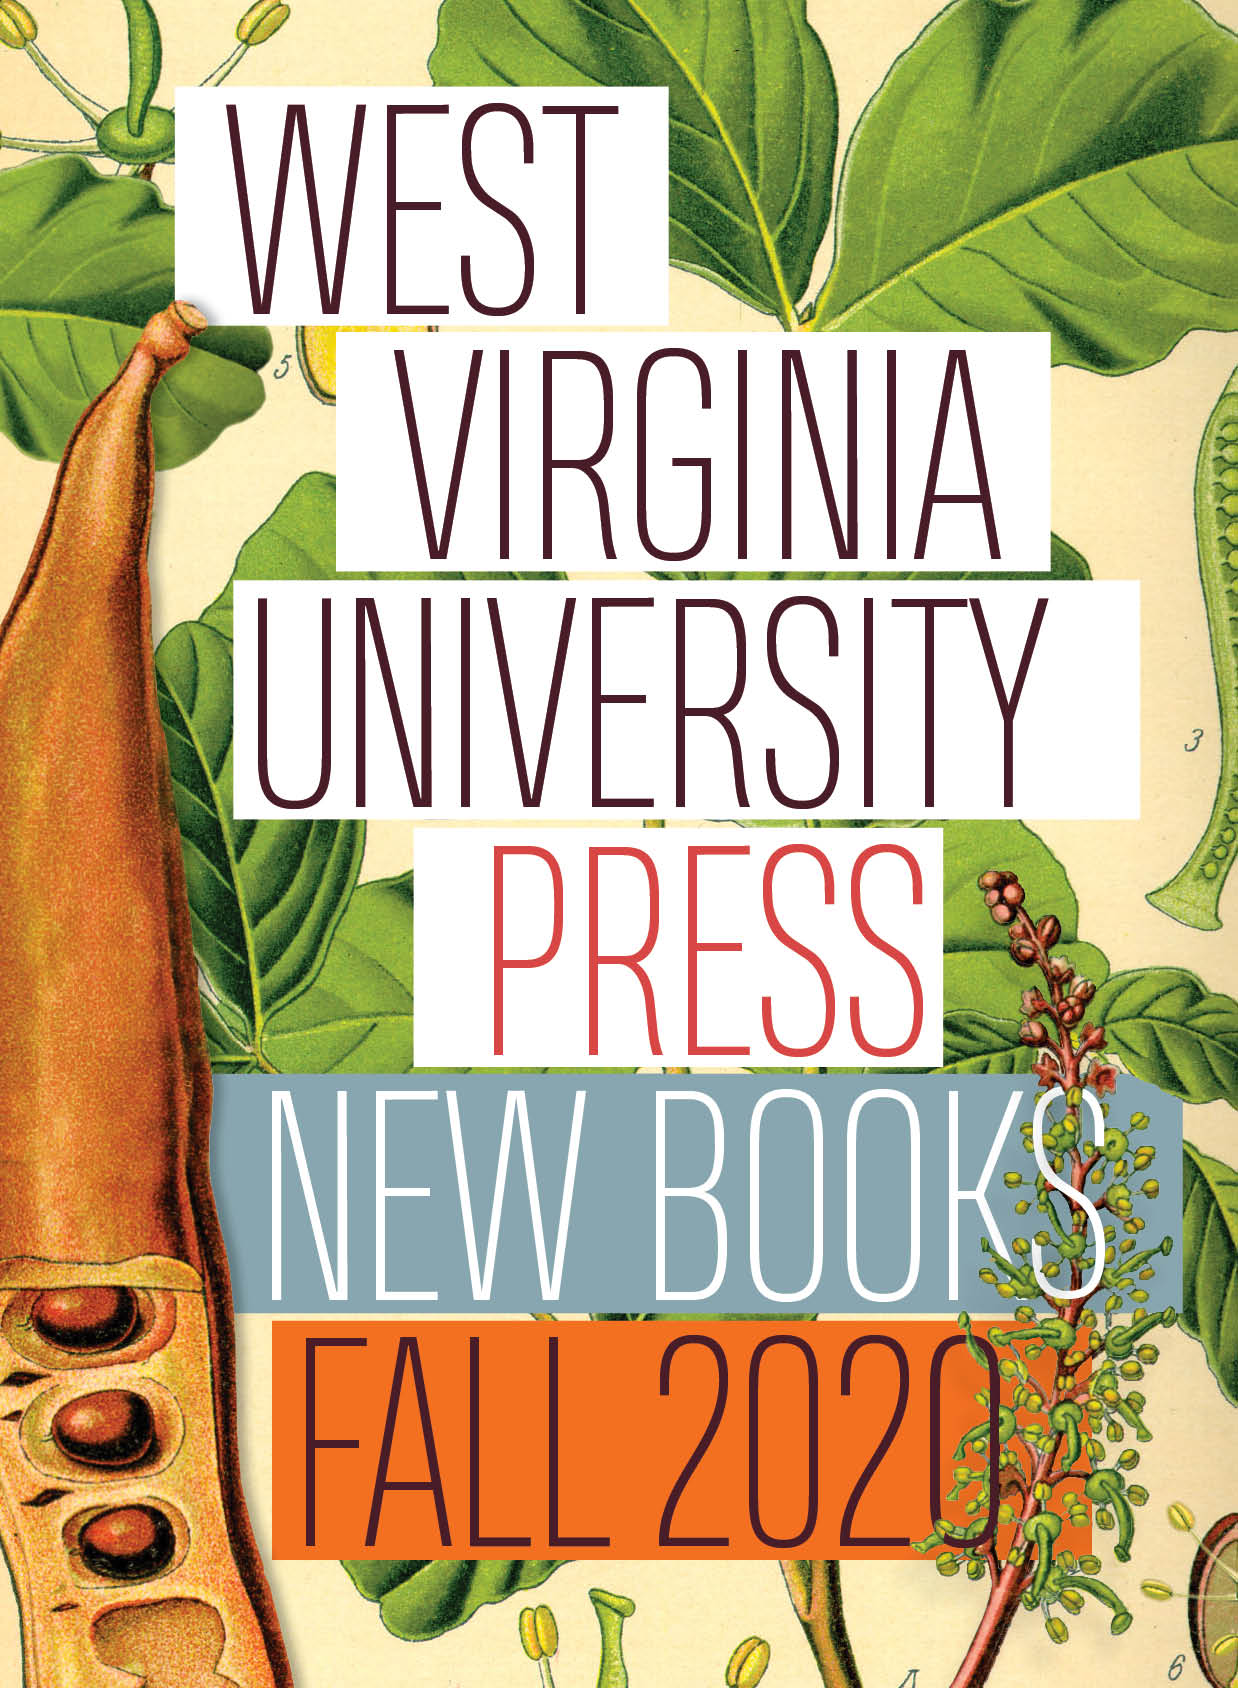 WVU Press Fall 2020 New Books Catalog